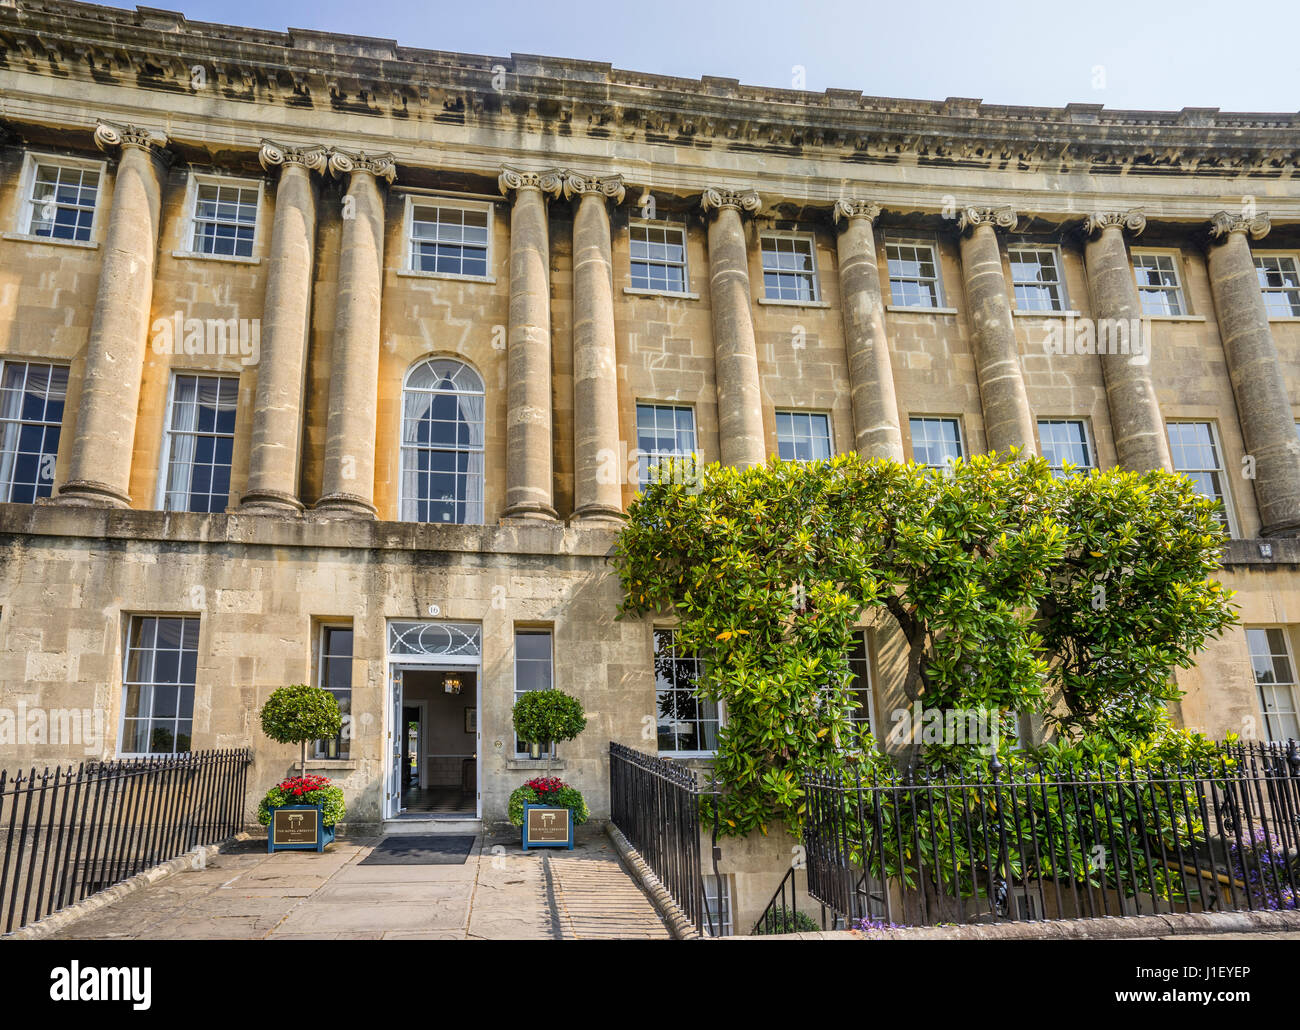 United Kingdom, Somerset, city of Bath, entrance to the Royal Crescent Hotel & Spa - Stock Image